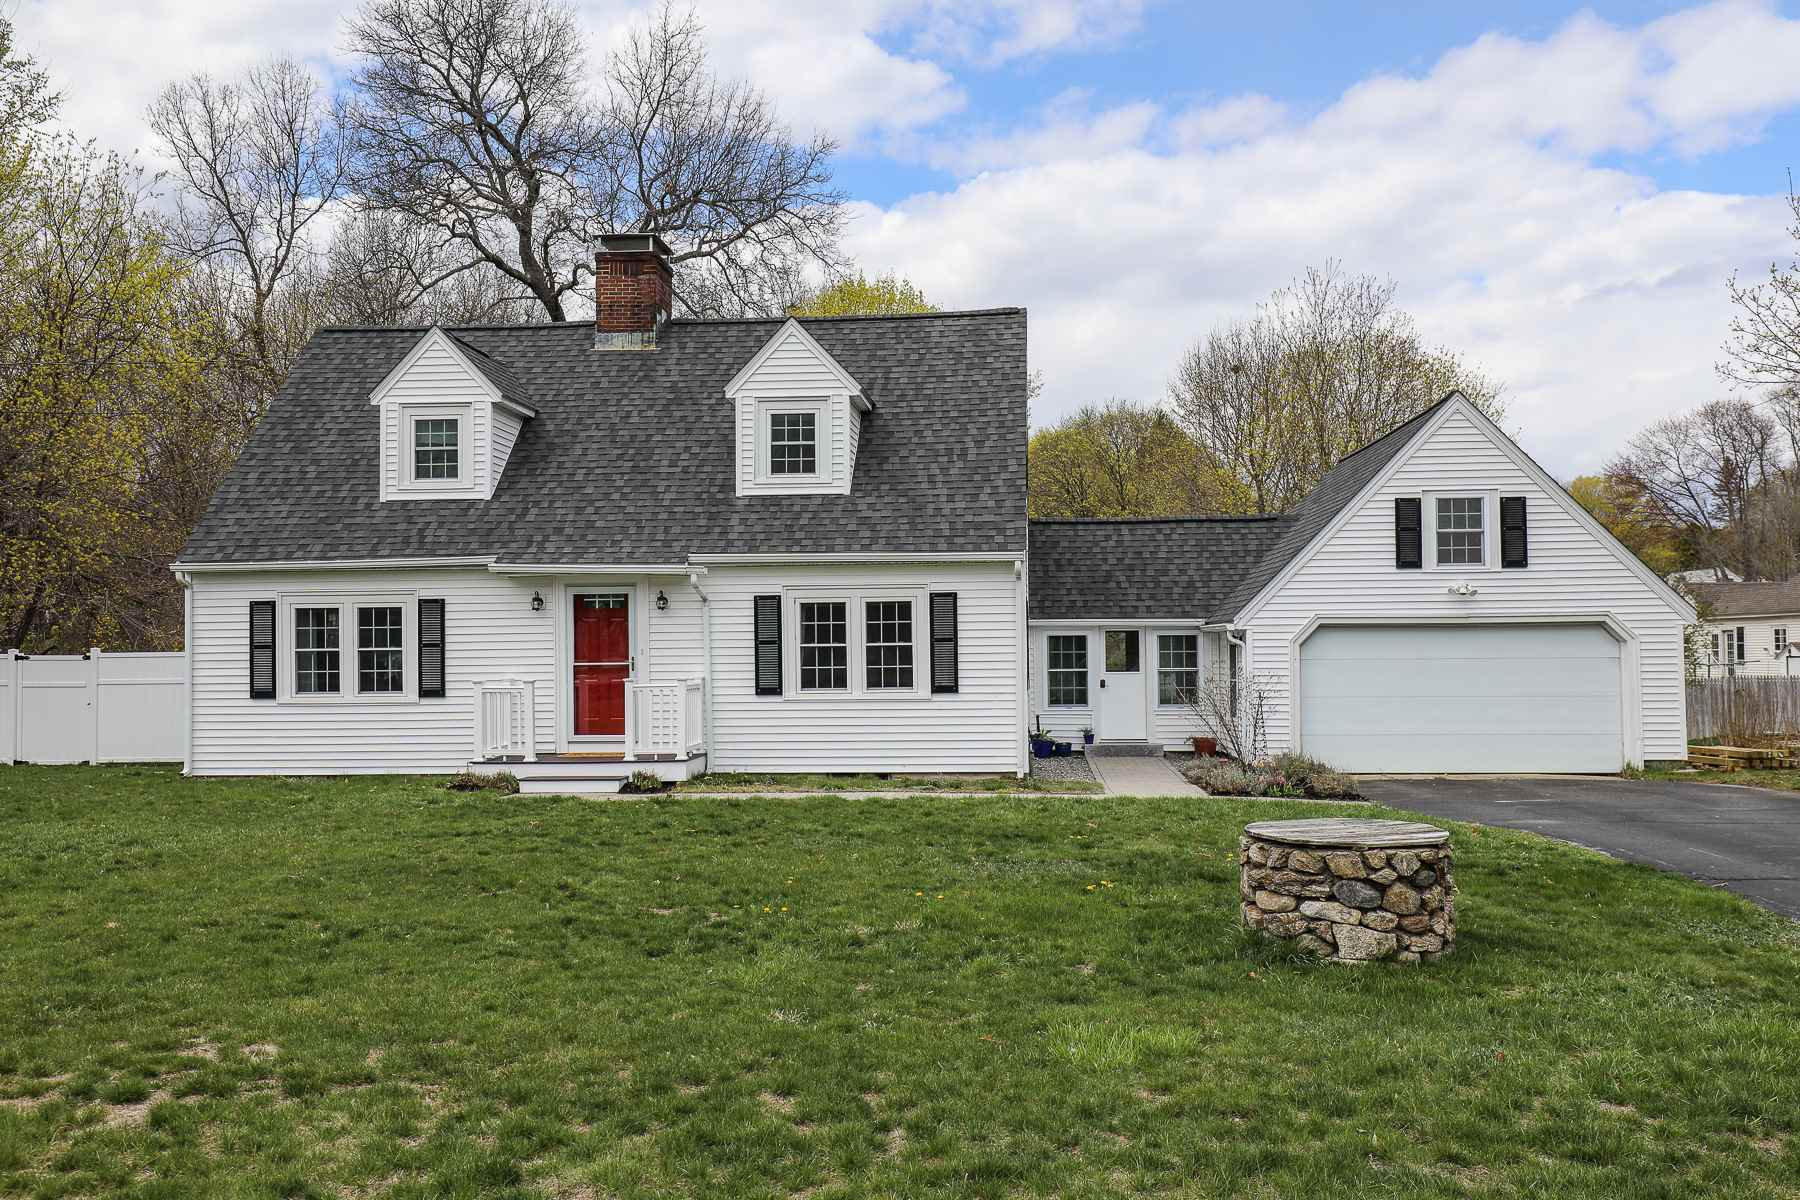 Photo of 451 Donald Street Bedford NH 03110